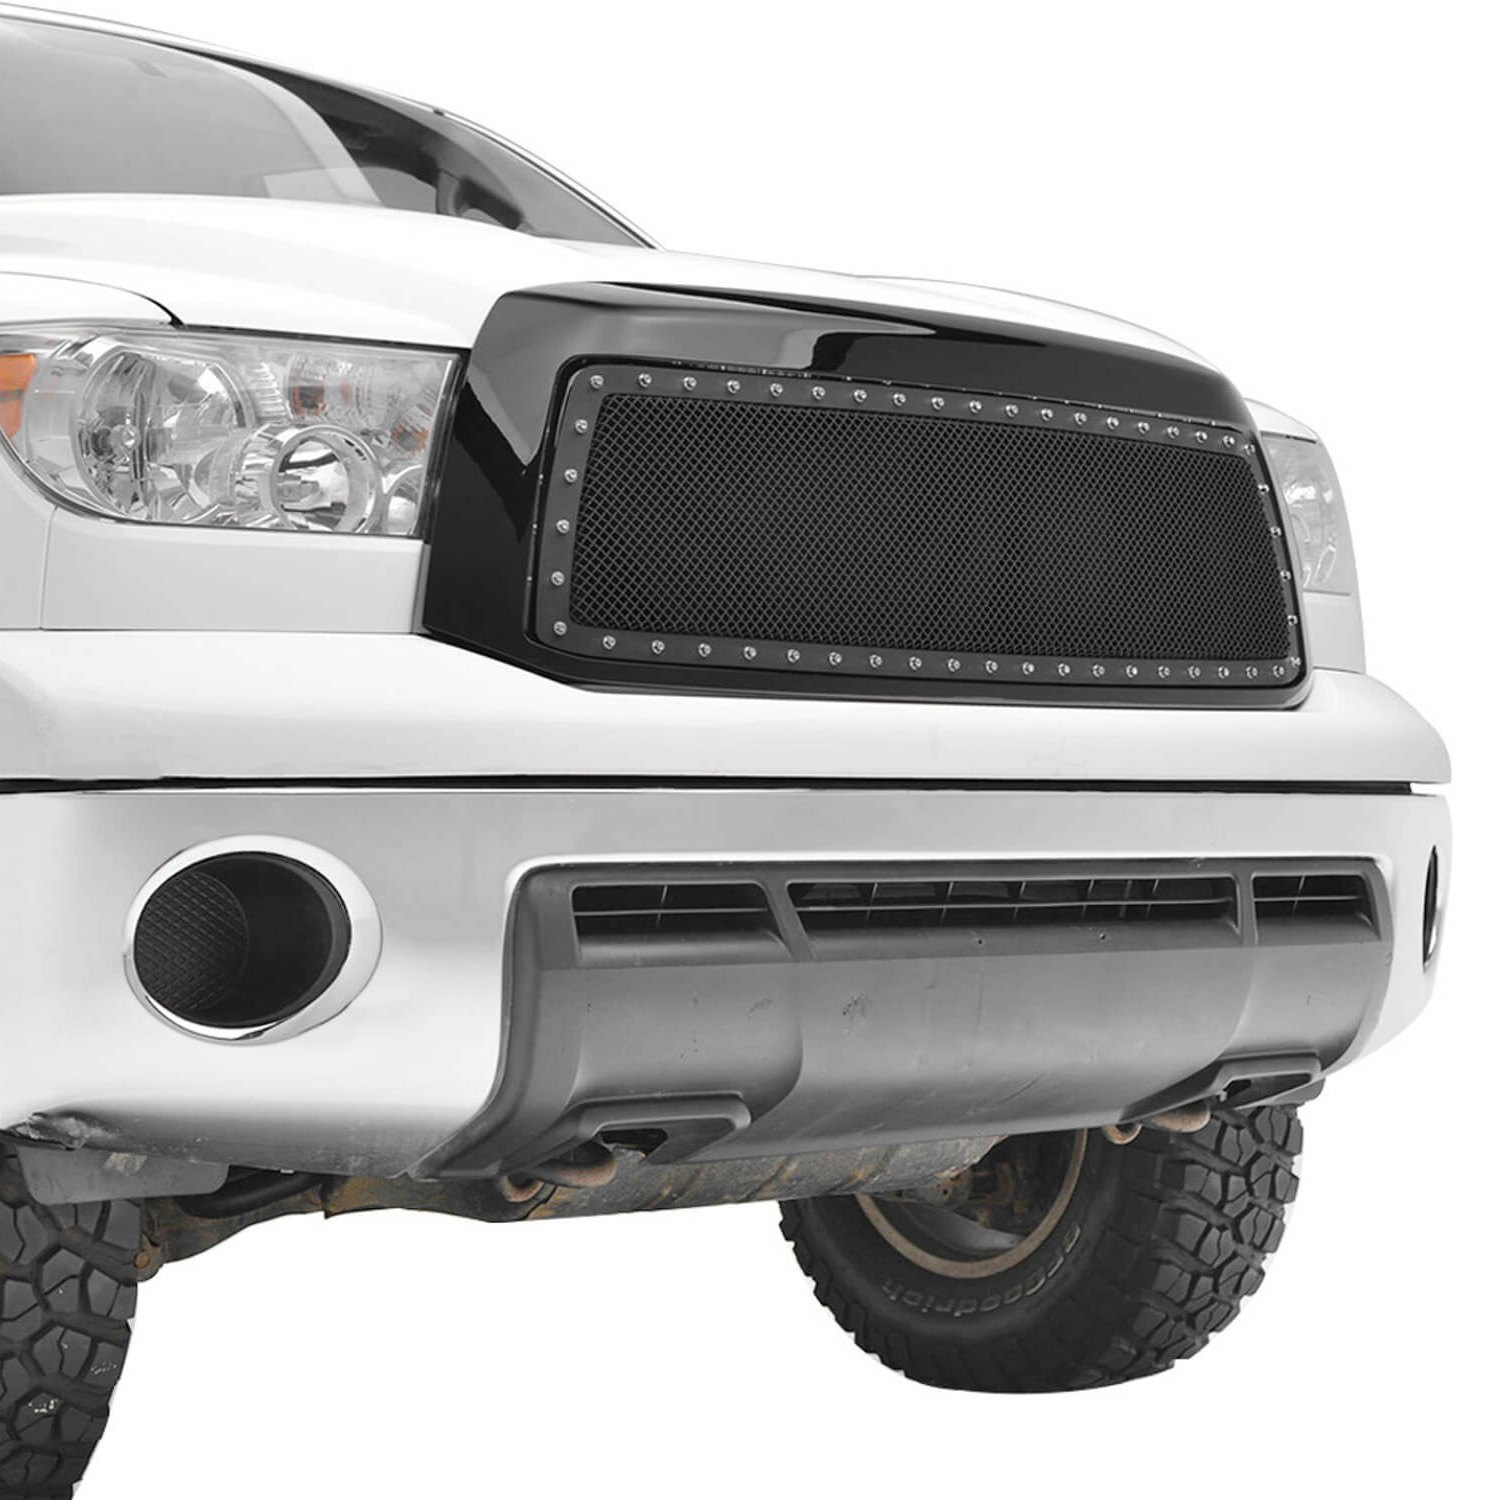 2013 Toyota Tundra Parts And Accessories Automotive Html